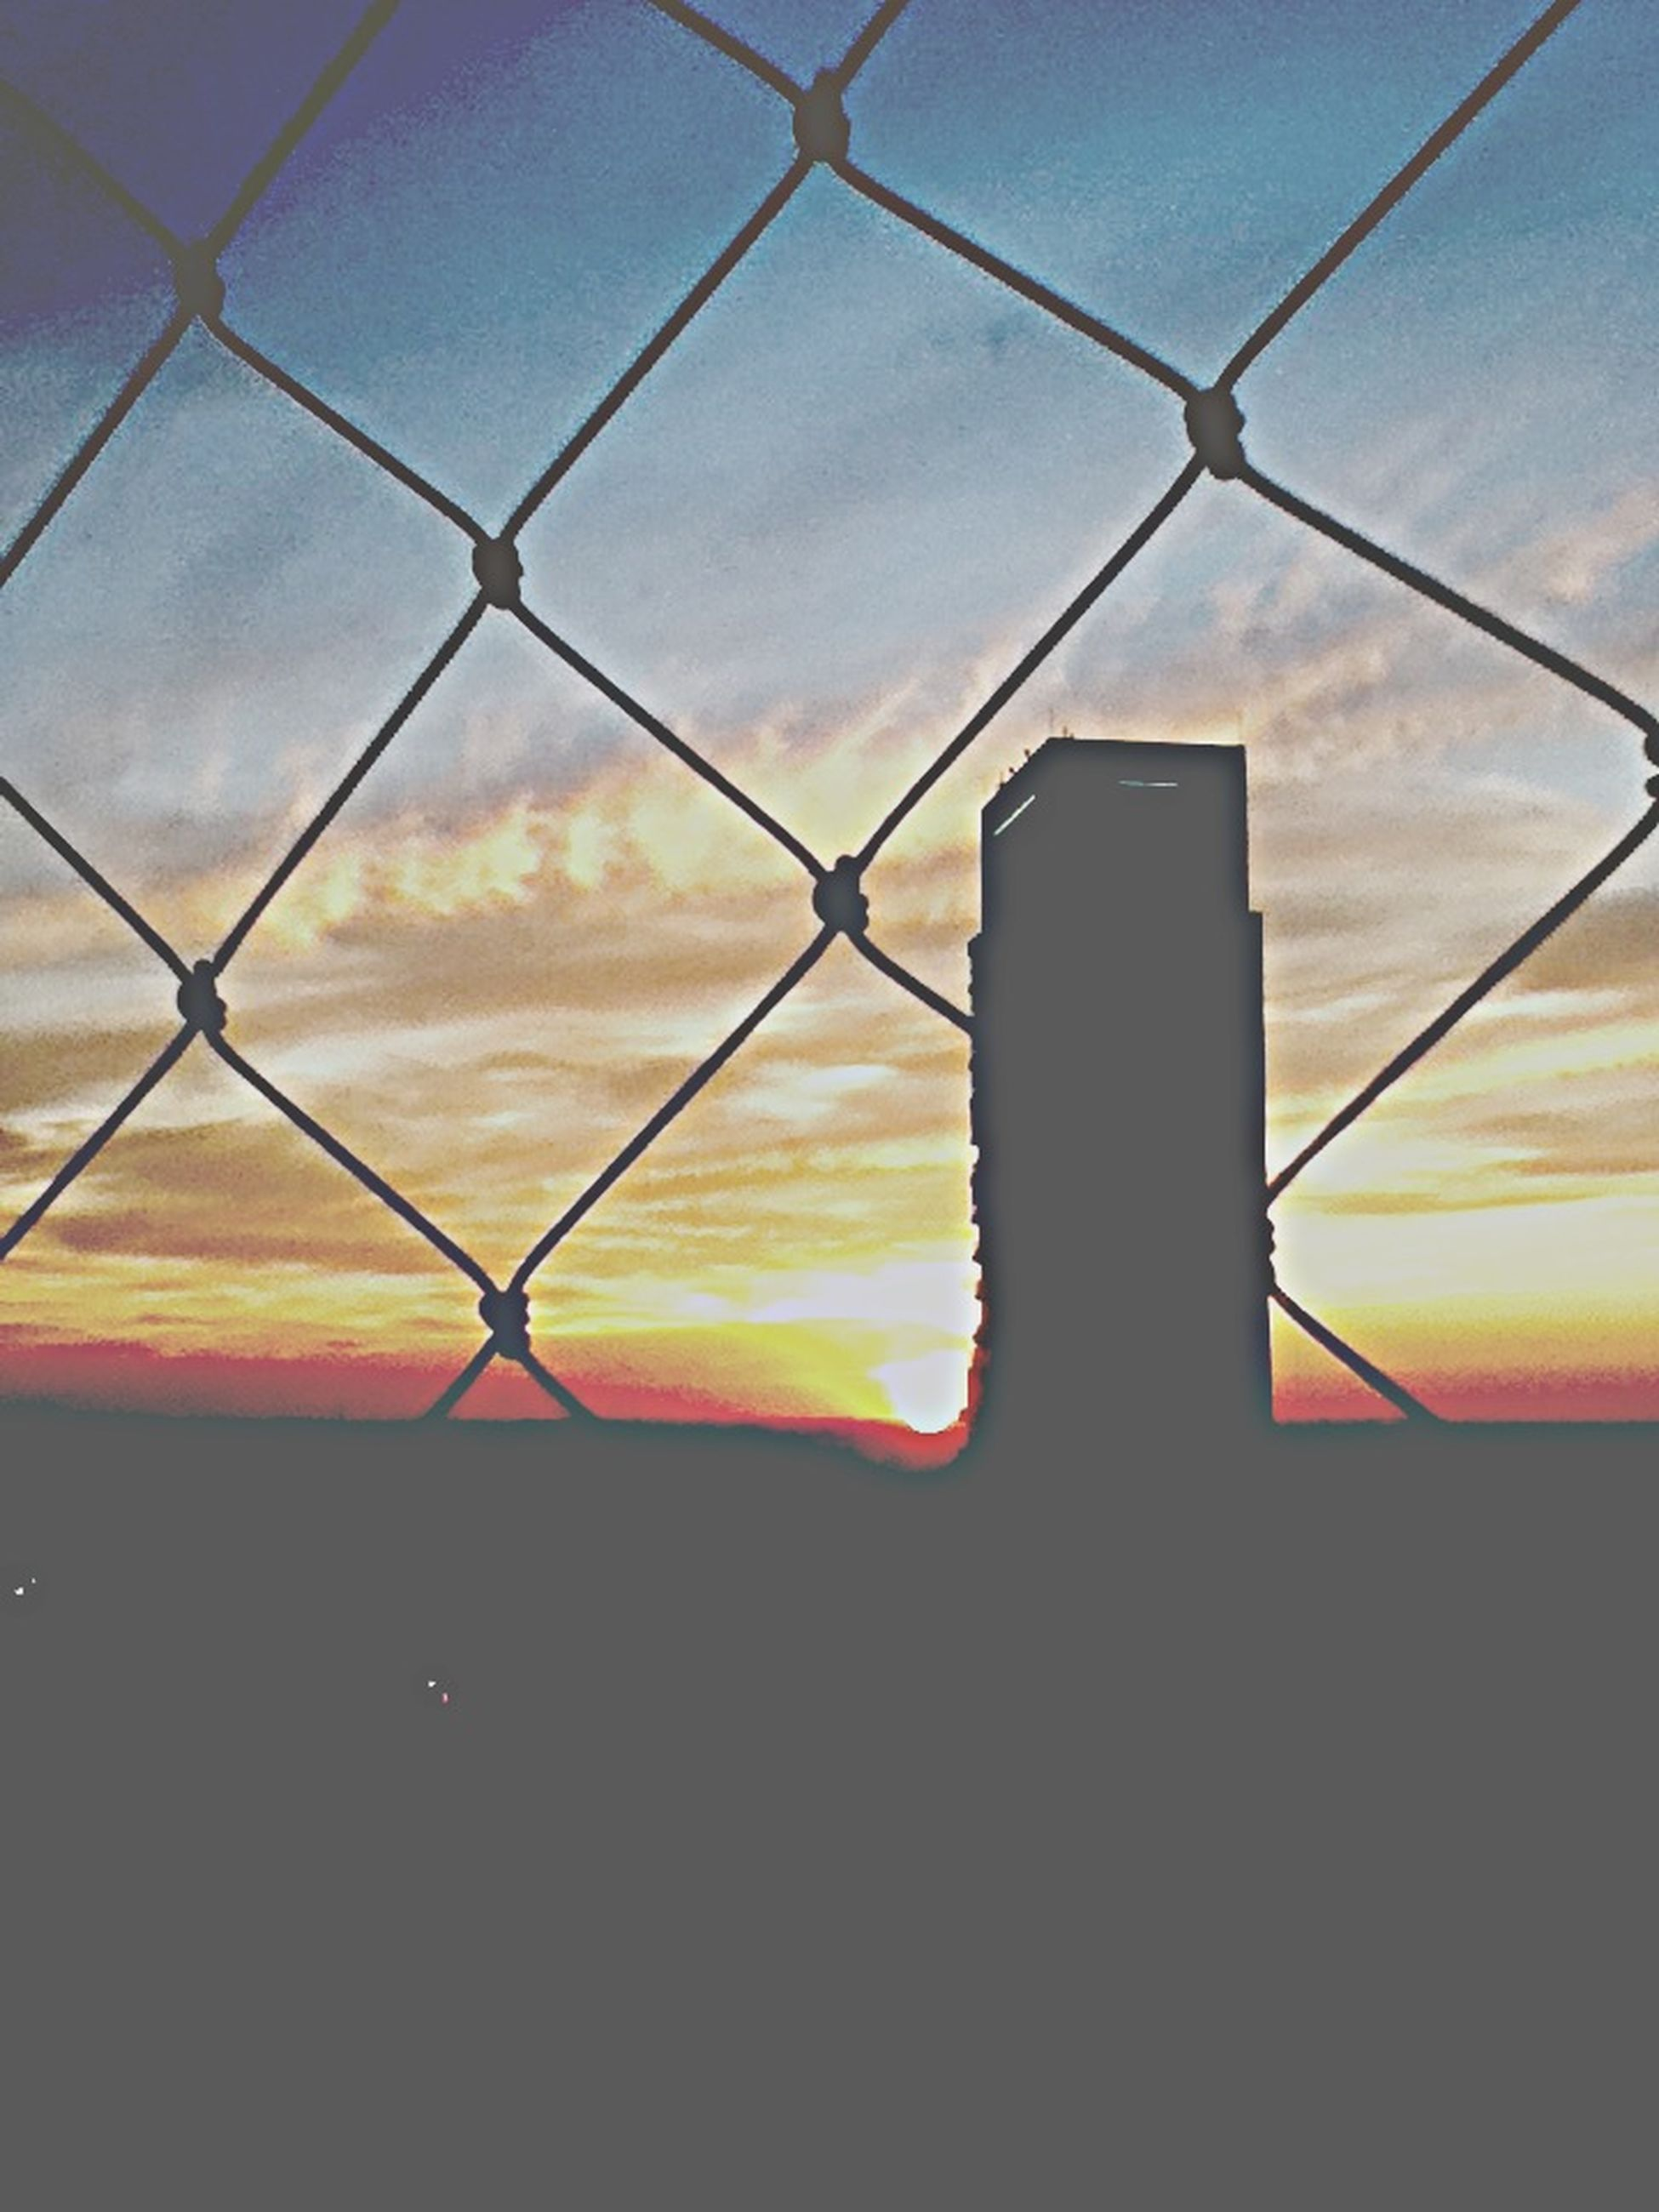 sunset, sky, safety, protection, cloud - sky, orange color, security, silhouette, metal, no people, cloud, chainlink fence, built structure, window, outdoors, fence, architecture, backgrounds, pattern, dusk